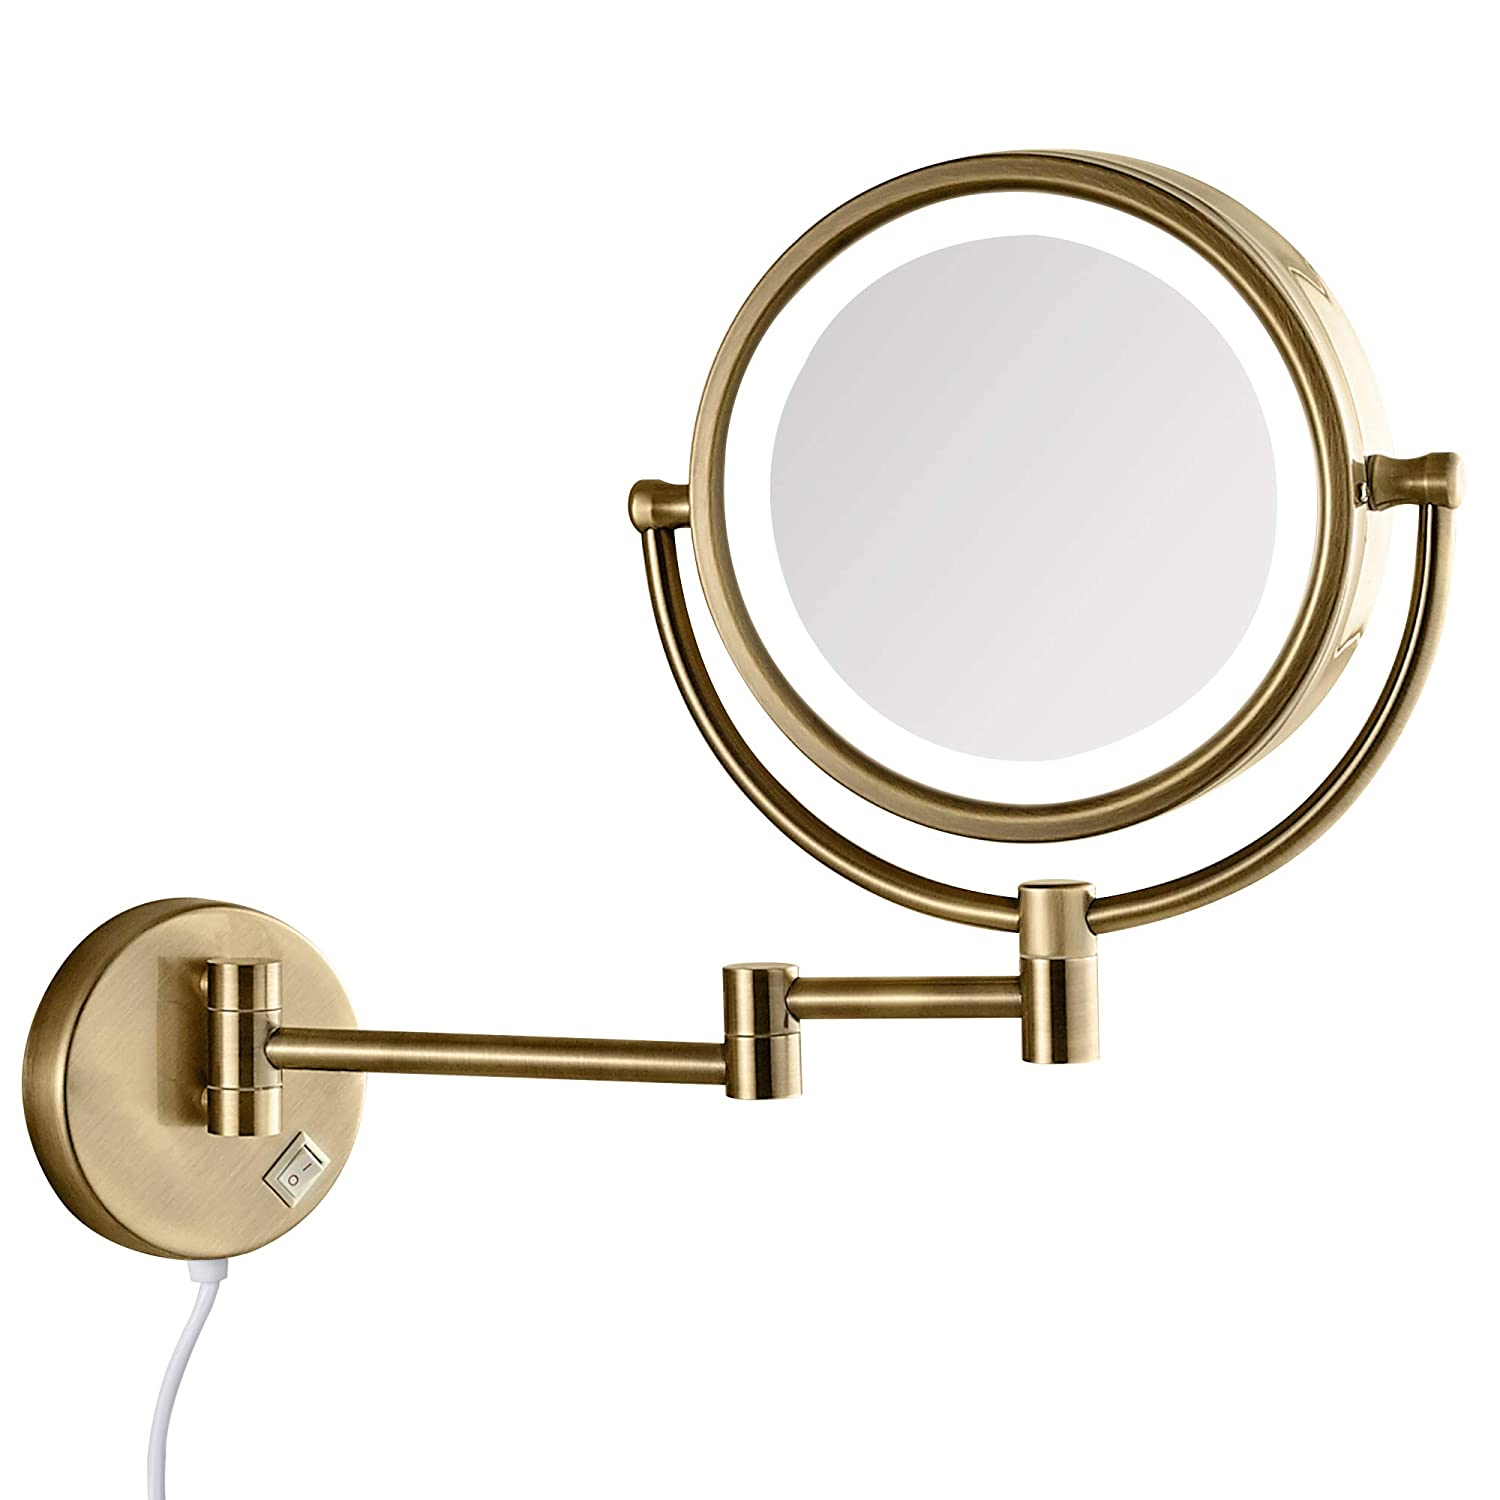 GURUN LED Lighted Makeup Mirror Wall Mounted with 7X Magnification,Antique Brass Finished, Plug Powered, 8.5 Inch, Brass,M1809DK(8.5in,7X)